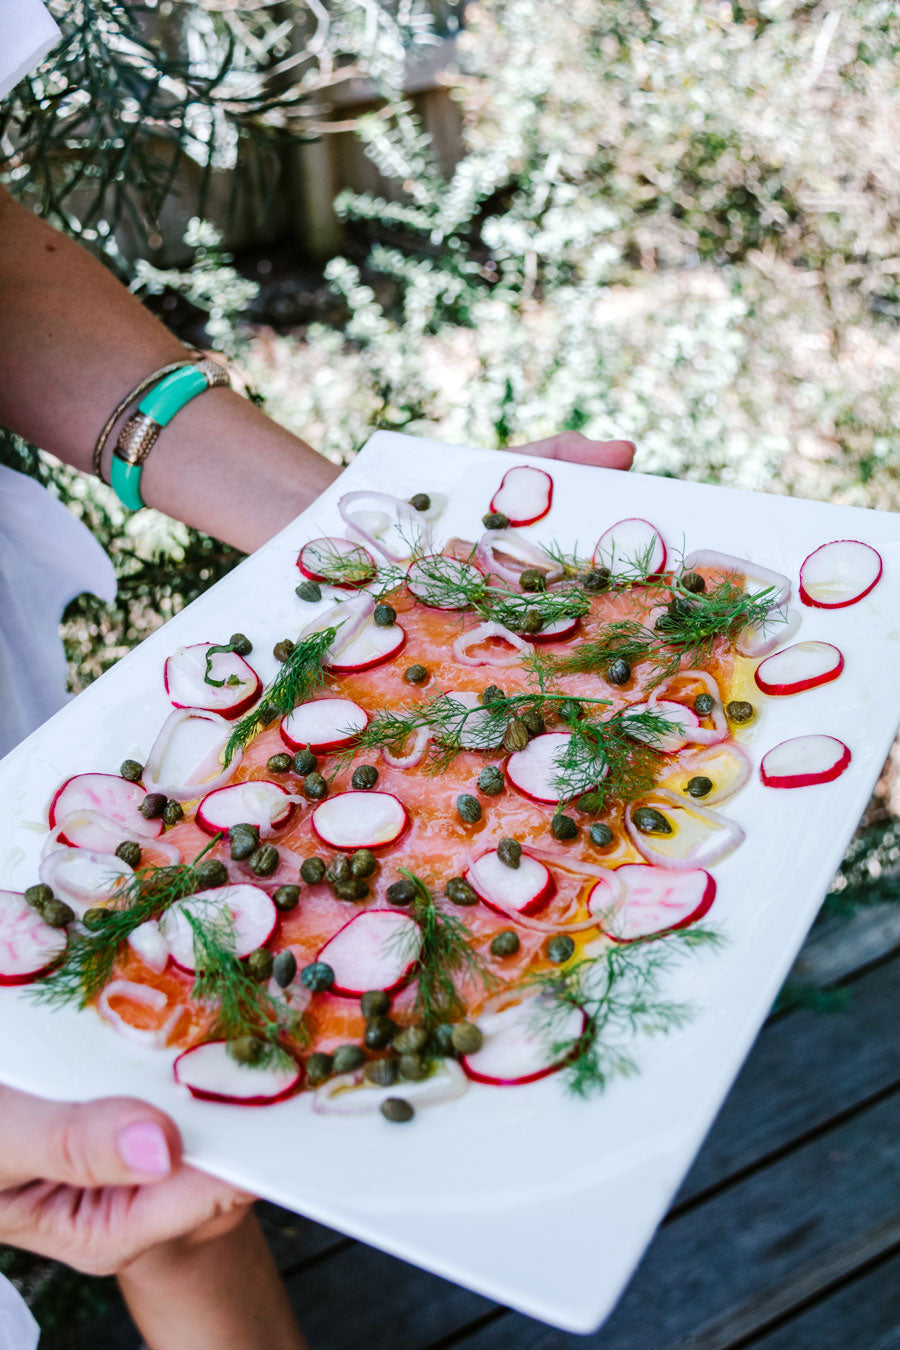 Smor-Kitchen-Christmas-Feast-Citrus-Cured-Smoked-Salmon-Fennel-Leaves-Capers-Radish-Recipe